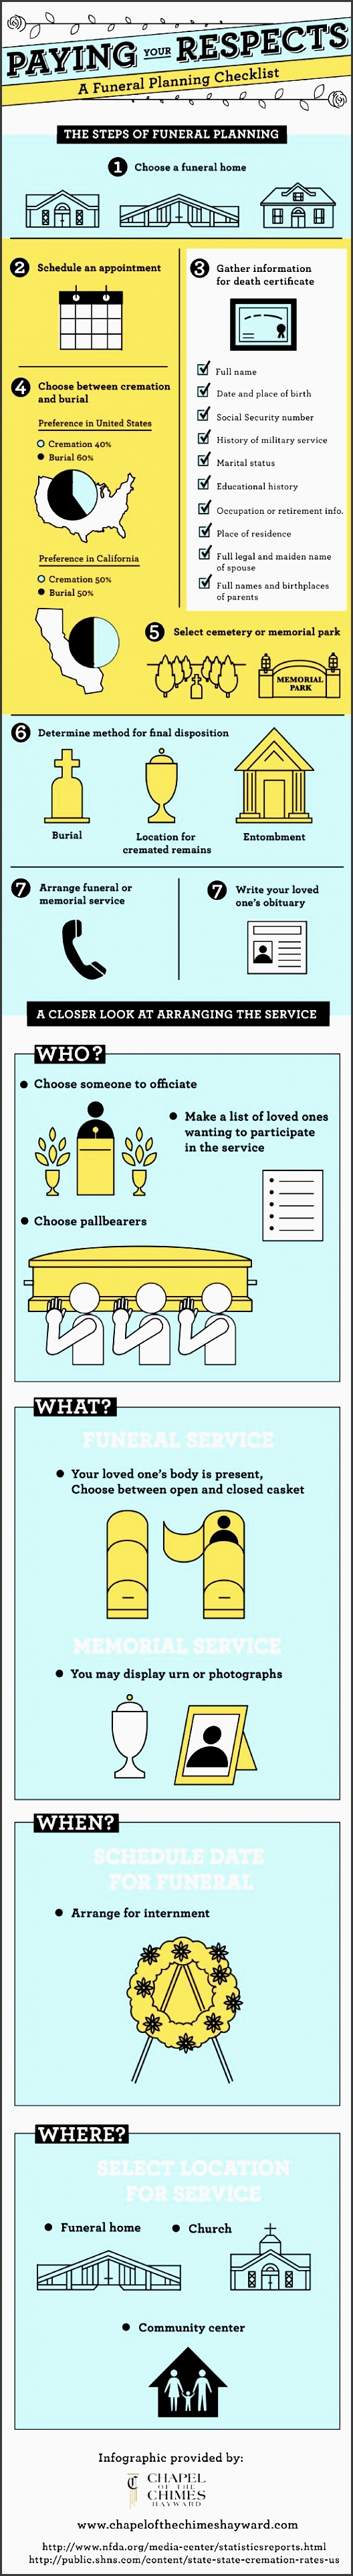 paying your respects a funeral planning checklist infographic